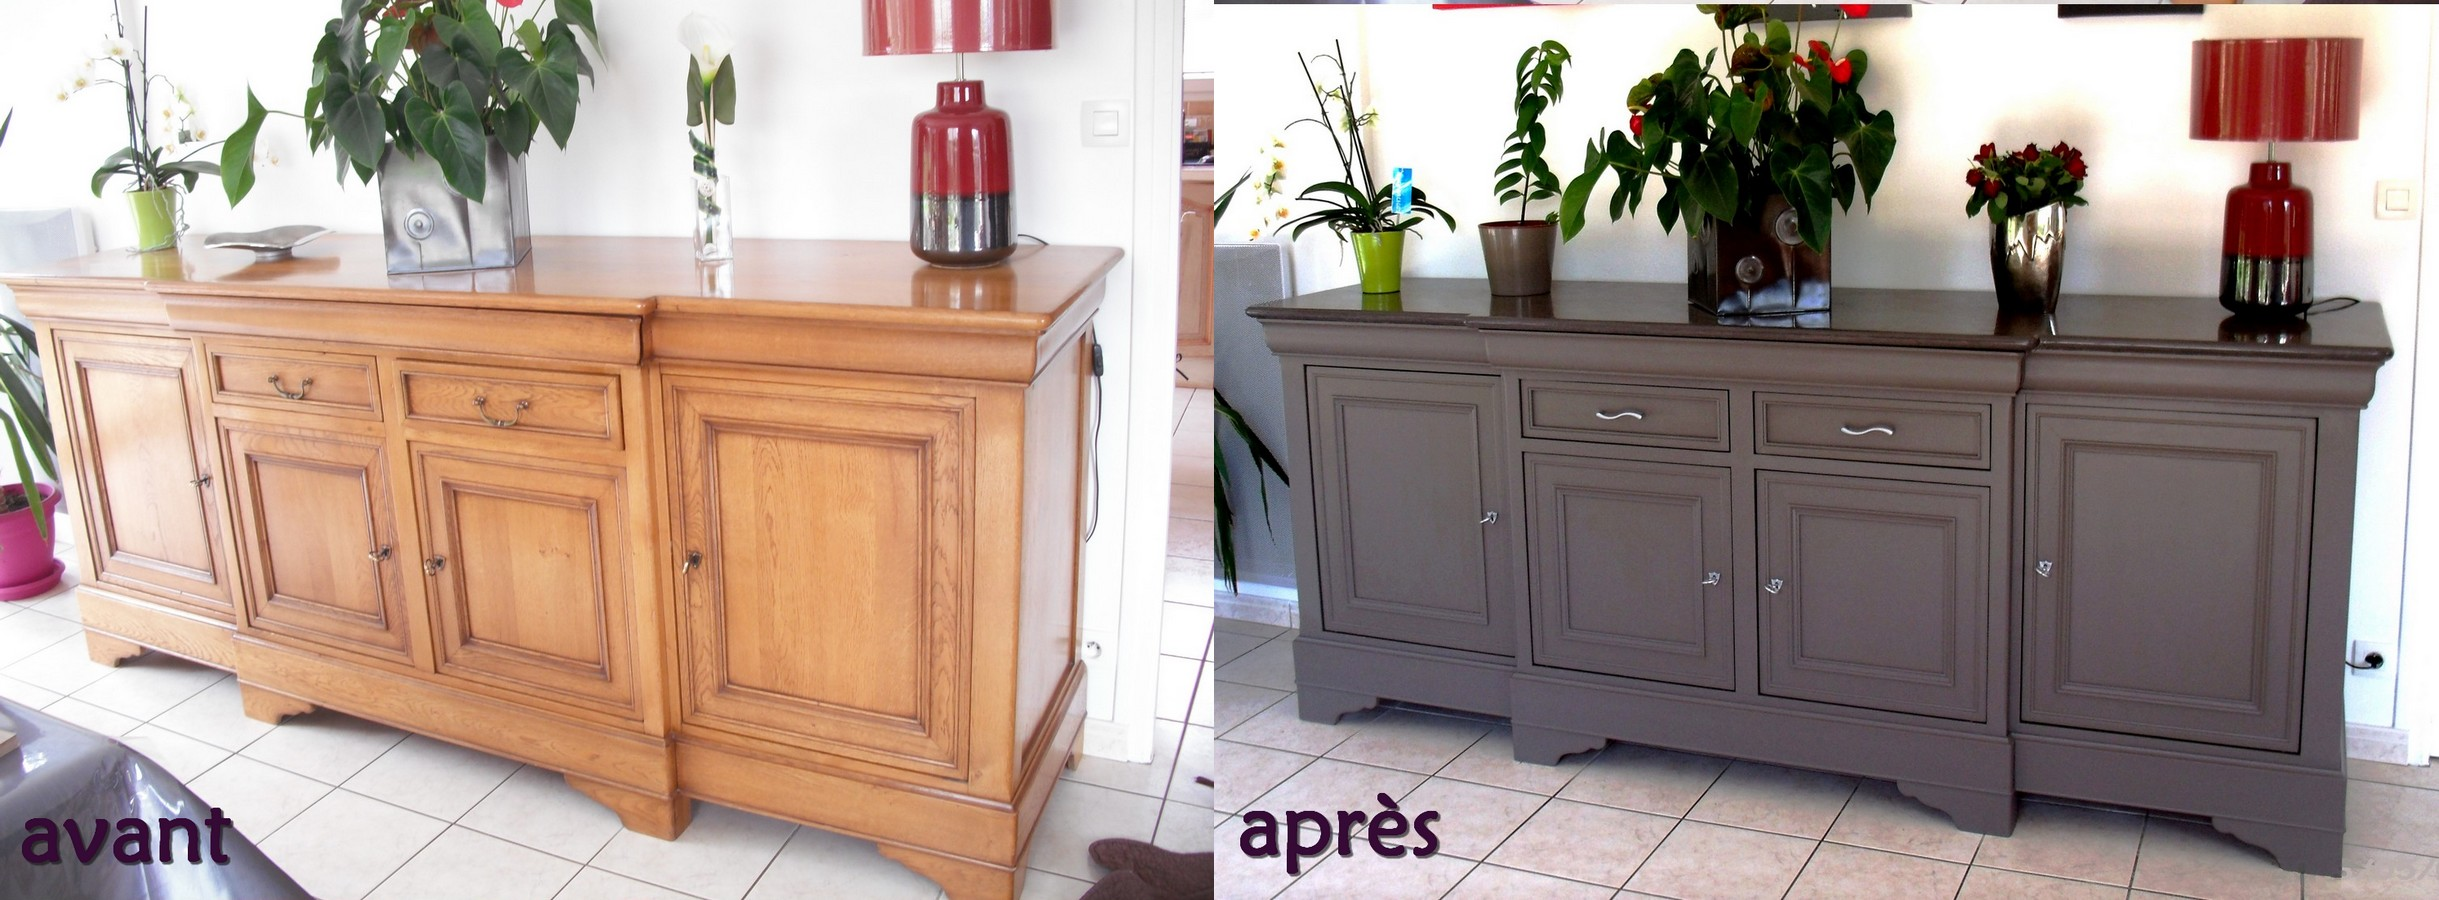 Photos avant apr s relooker un meuble - Relooking buffet ancien ...